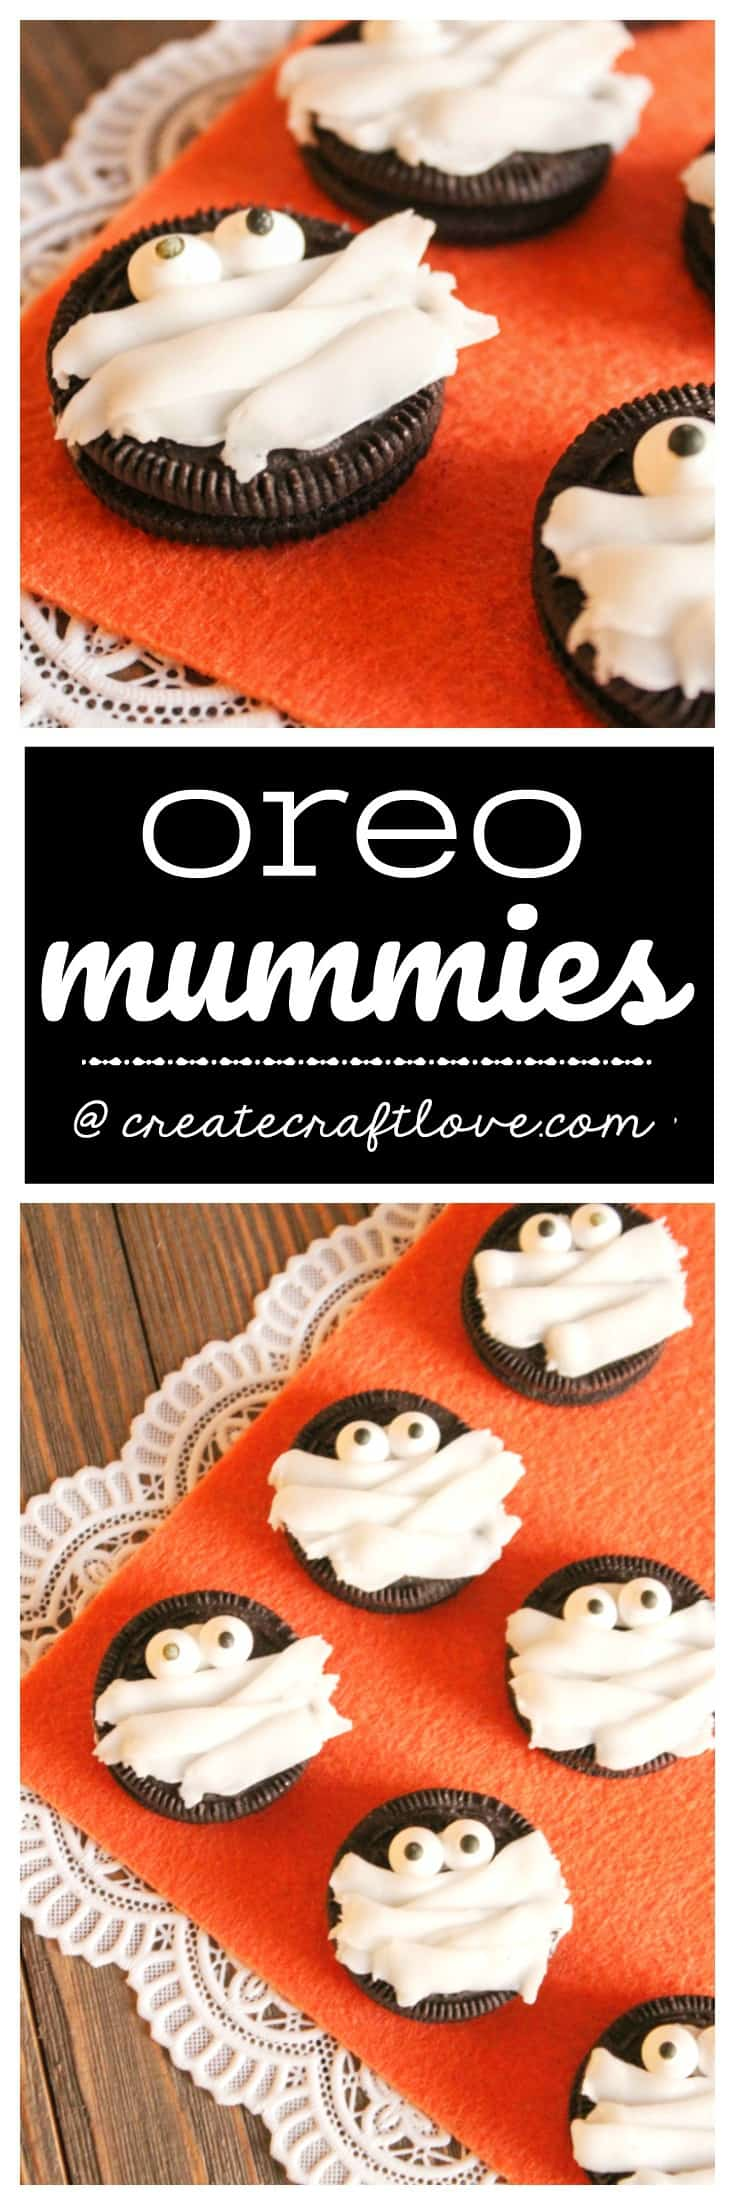 These Oreo Mummies are perfect for classroom or costume parties this Halloween!